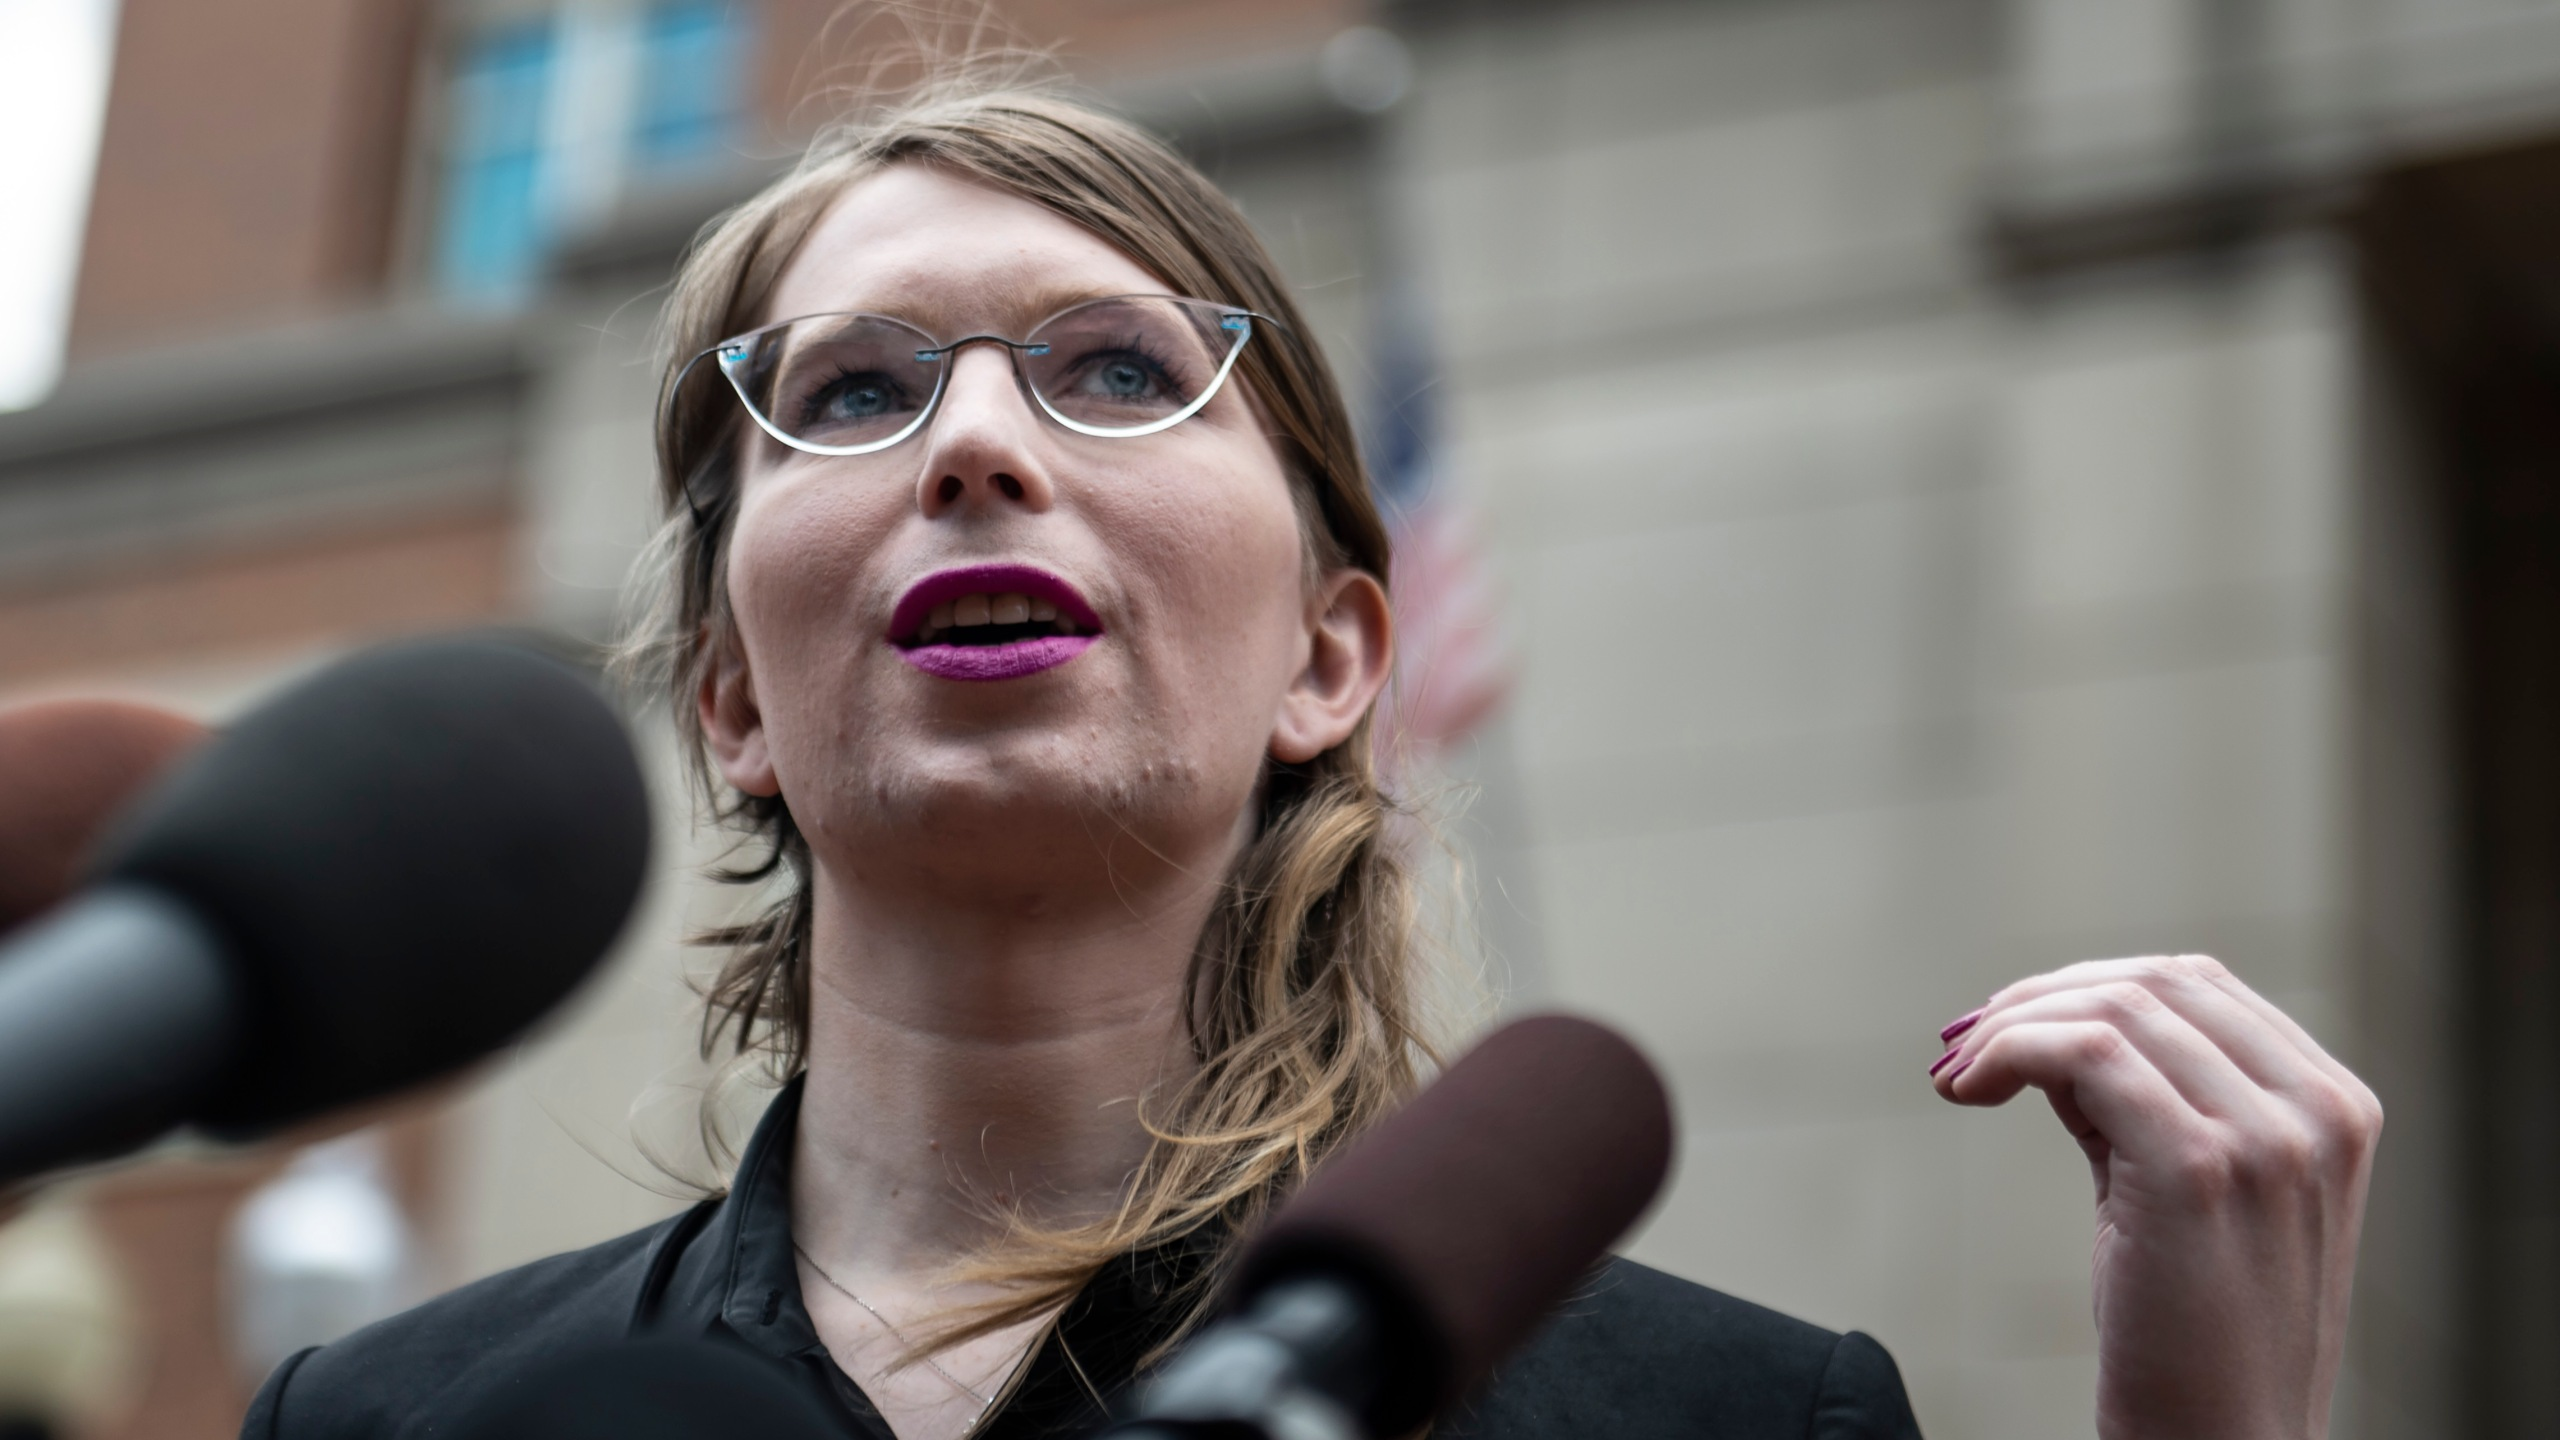 Former military intelligence analyst Chelsea Manning speaks to the press ahead of a grand jury appearance about WikiLeaks in Alexandria, Virginia, on May 16, 2019. (Credit: Eric Baradat / AFP / Getty Images)